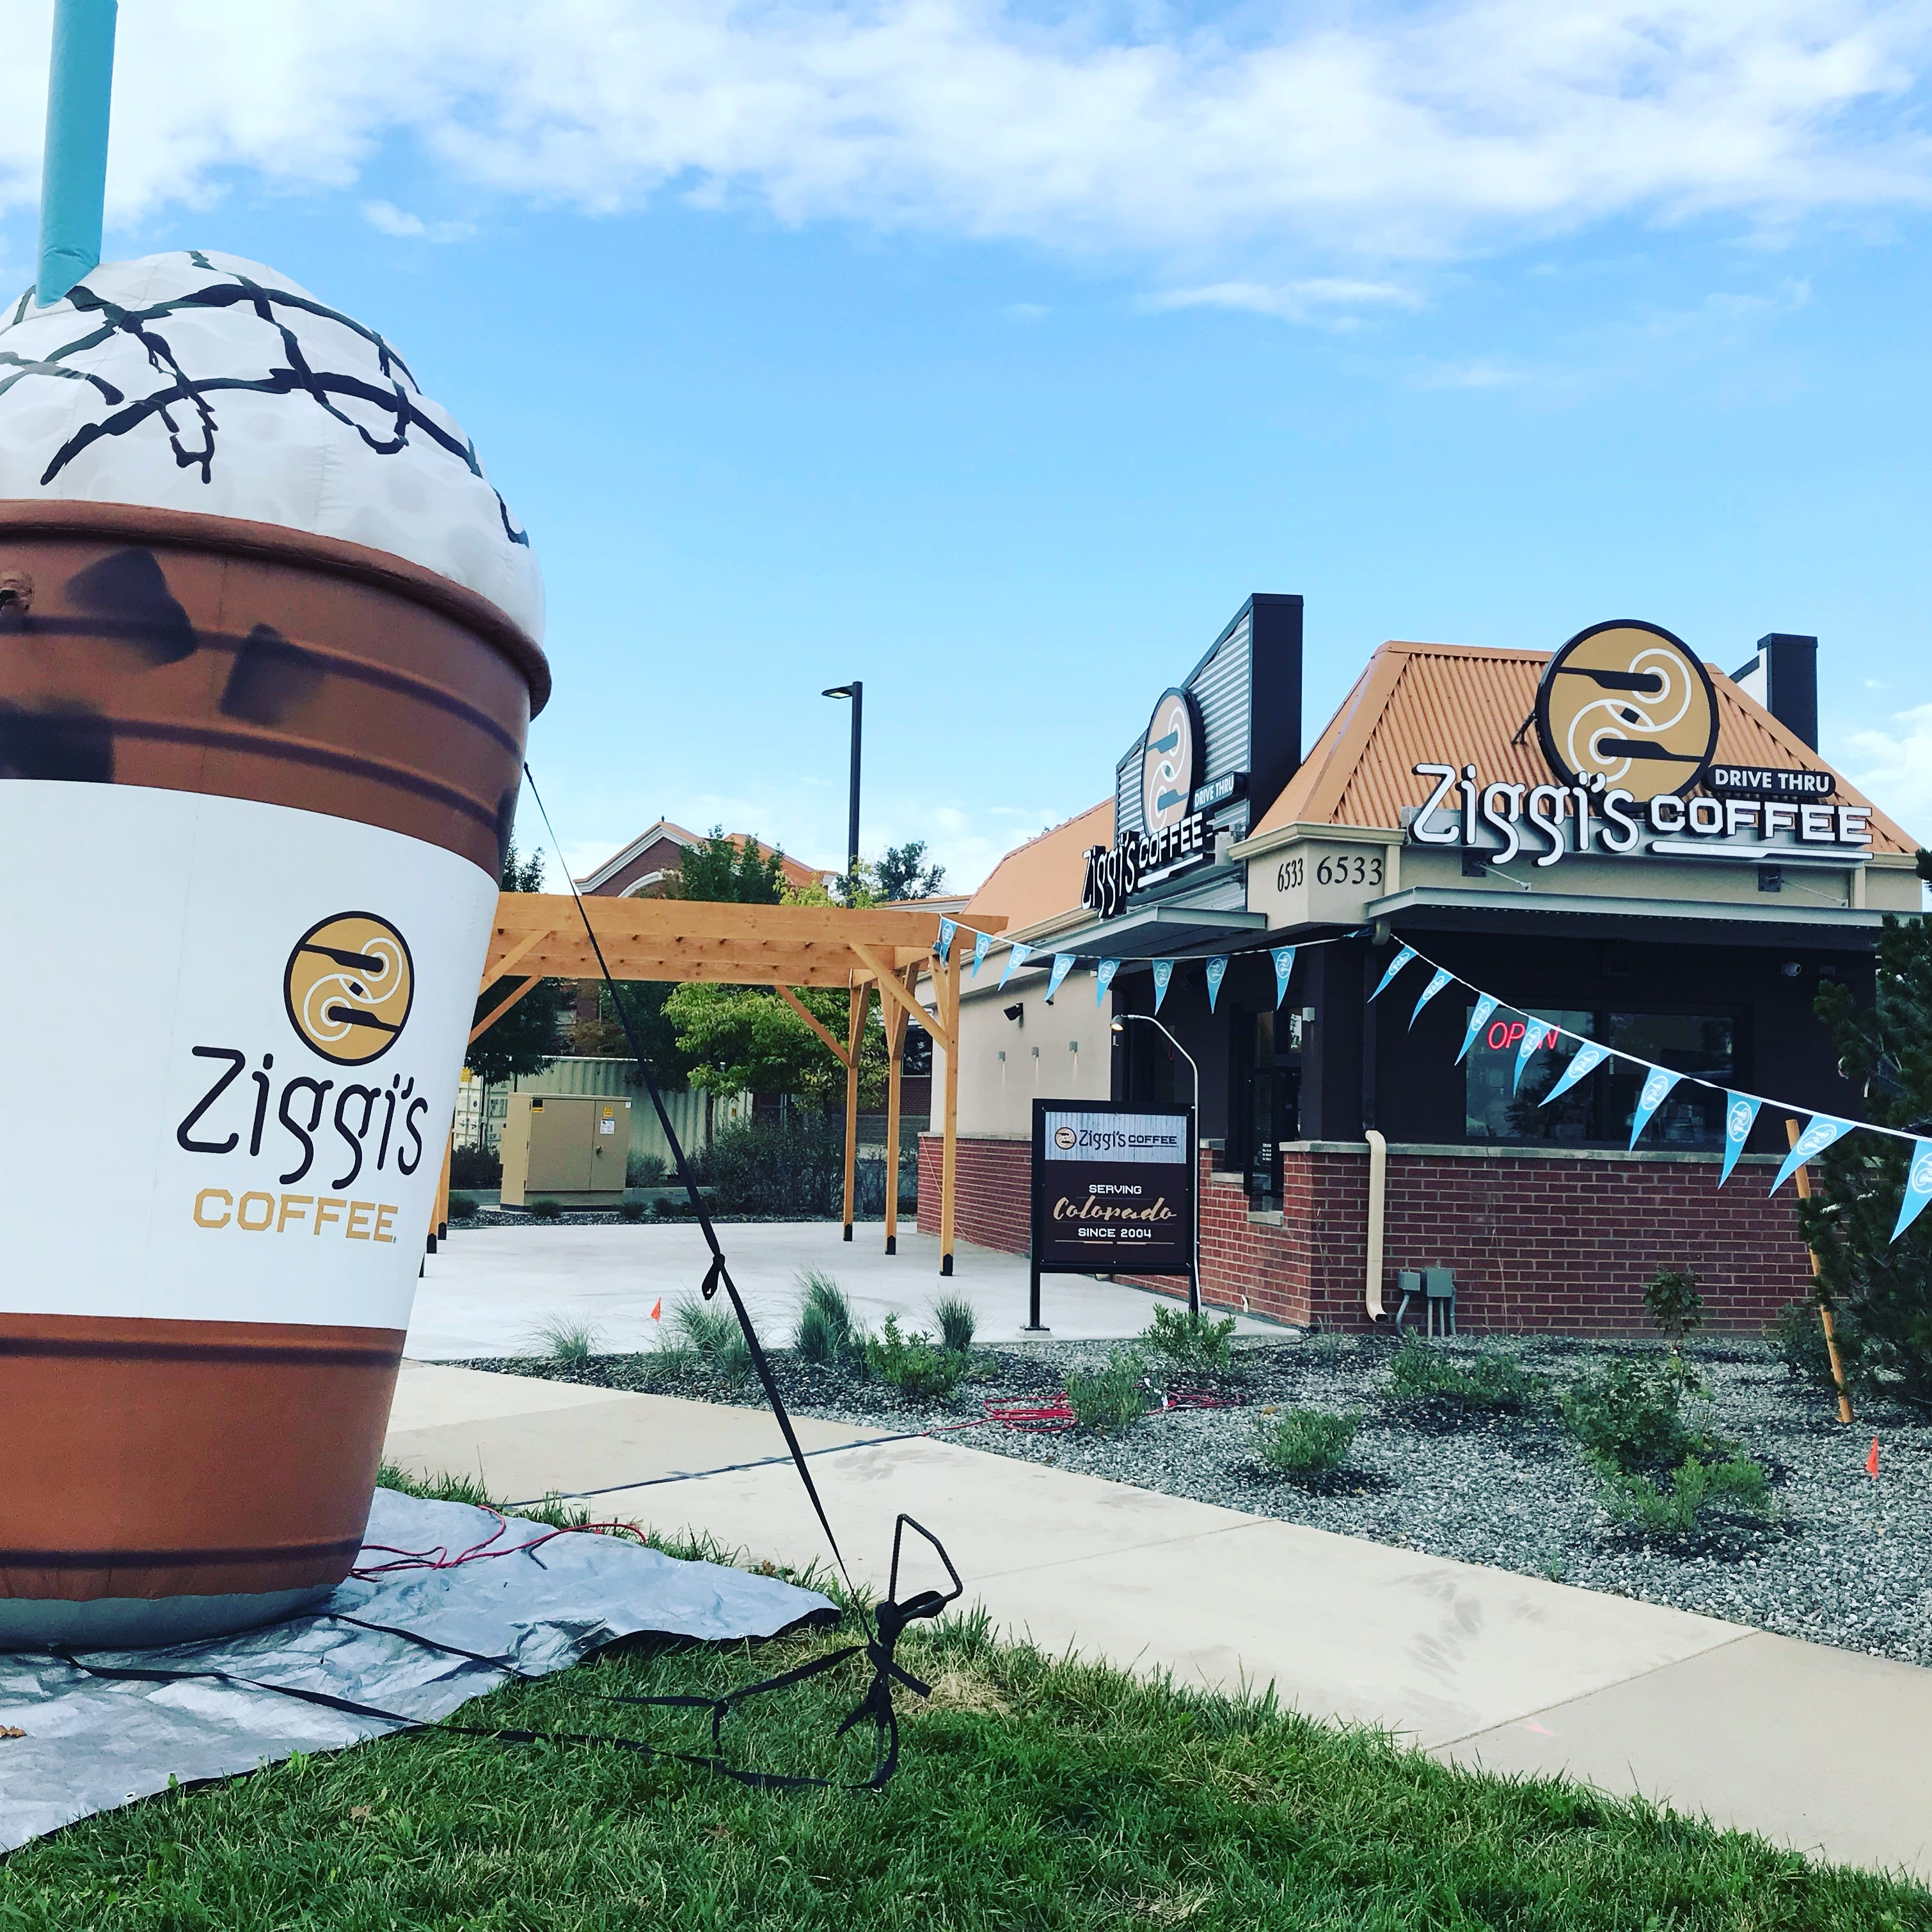 Windsor getting a Ziggi's drive-through coffee stop